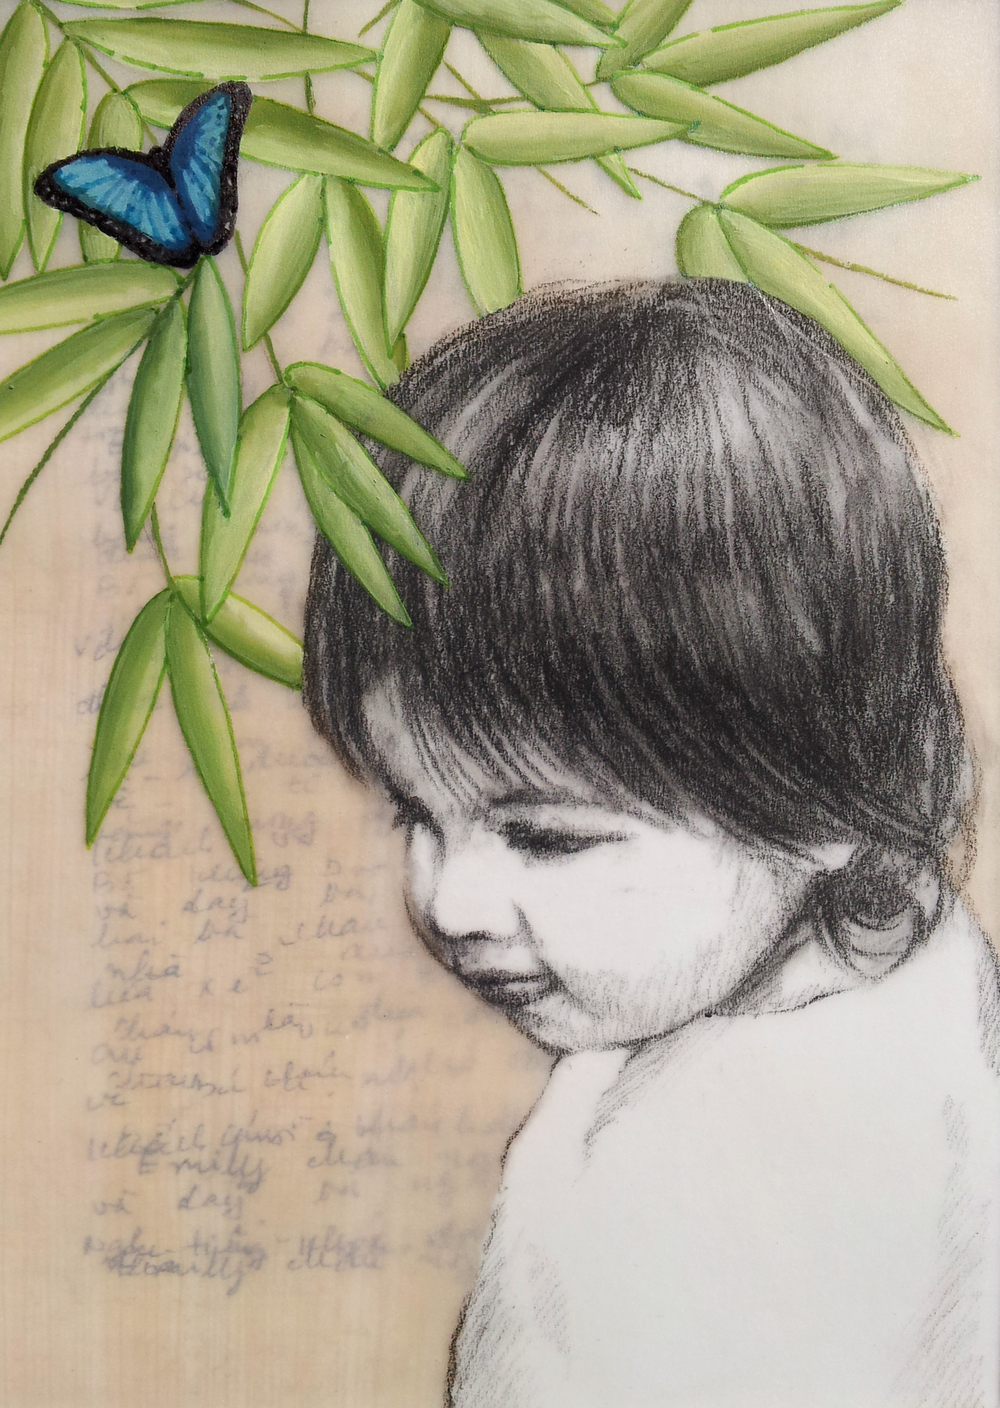 "Love Letter No. 2   (  Emily with Bamboo and Butterfly  ), 2014, Charcoal, gouache, and ink on paper, ink on papyrus and mylar, 6 ¾ x 4 ¾""  Emily finds shelter under a bamboo tree upon which a butterfly perches. Bamboo signifies strength and grace, while the butterfly is a symbol for the journey of the soul."